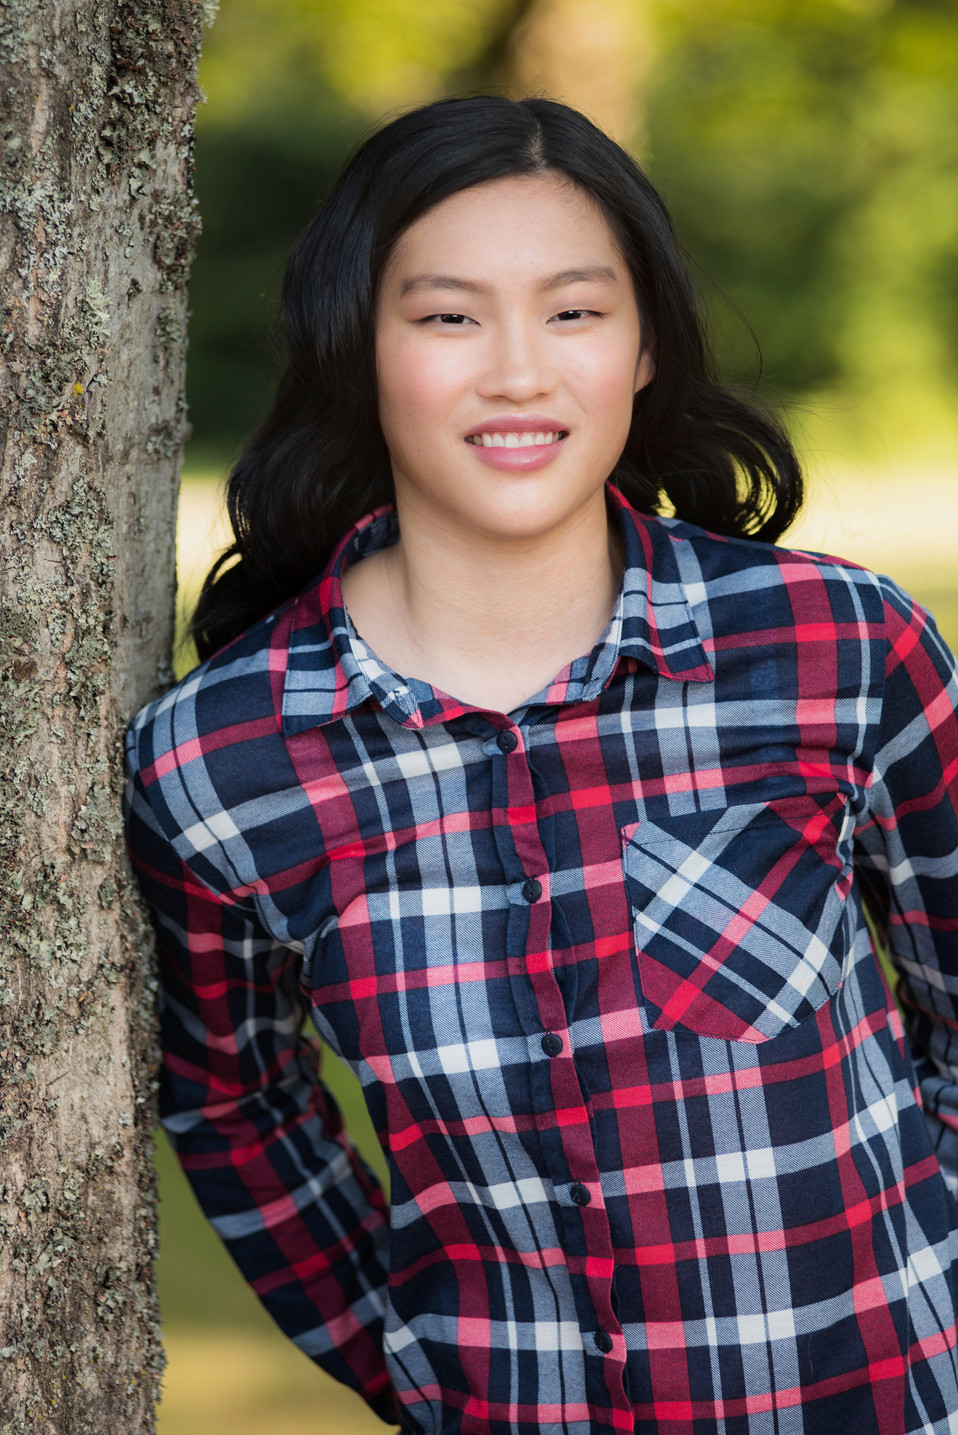 High school senior wearing a plaid shirt leaning against a tree.